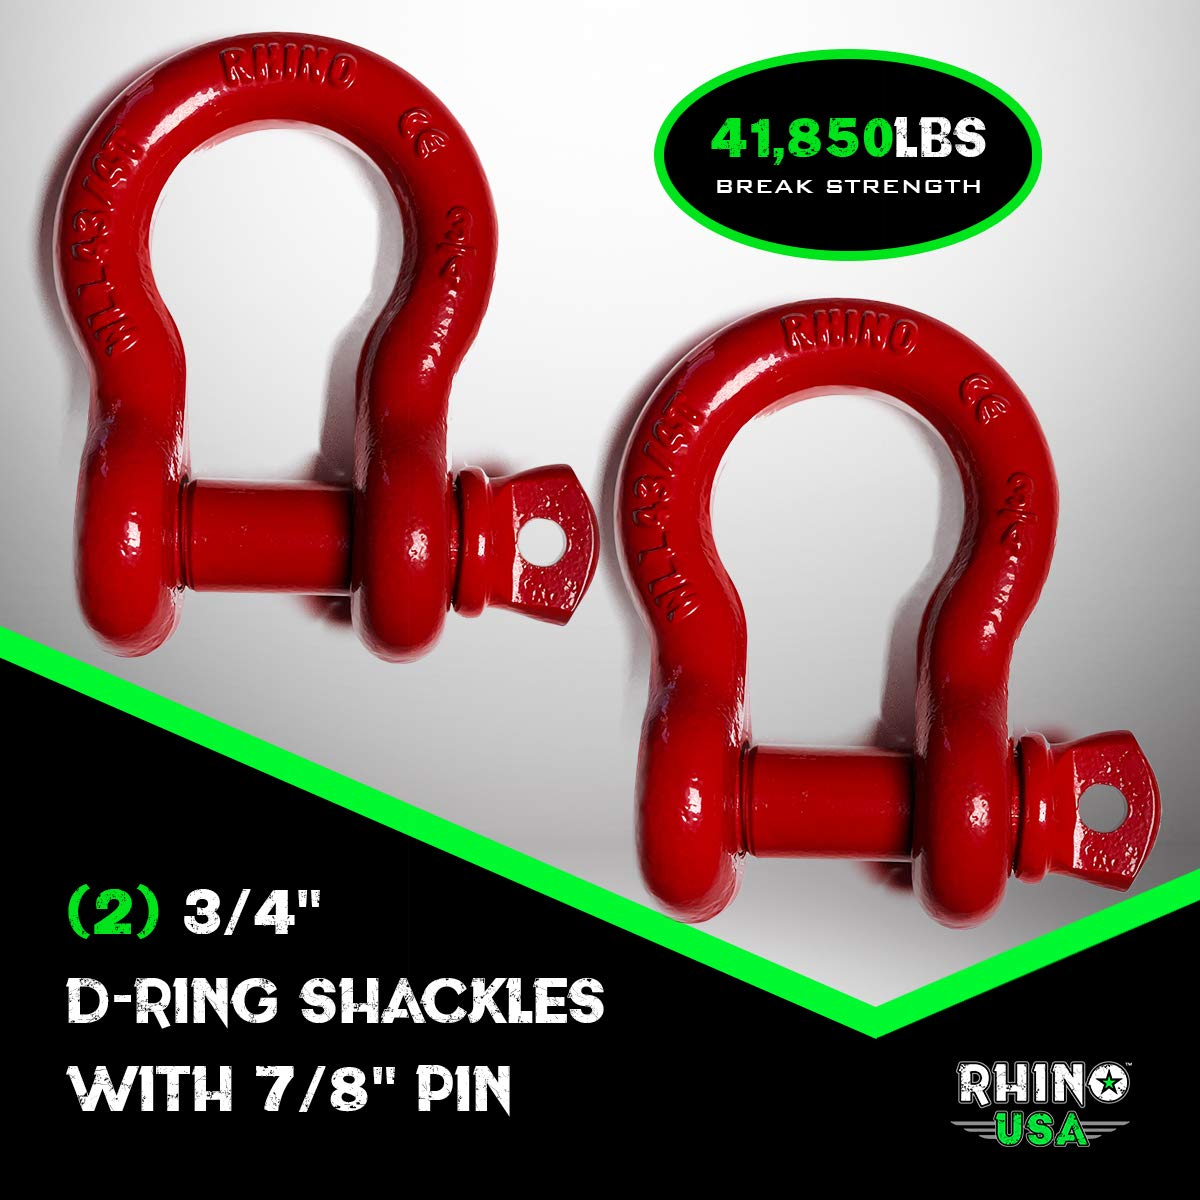 "Rhino USA D Ring Shackle (2 Pack) 41,850lb Break Strength – 3/4"" Shackle with 7/8 Pin for use with Tow Strap"